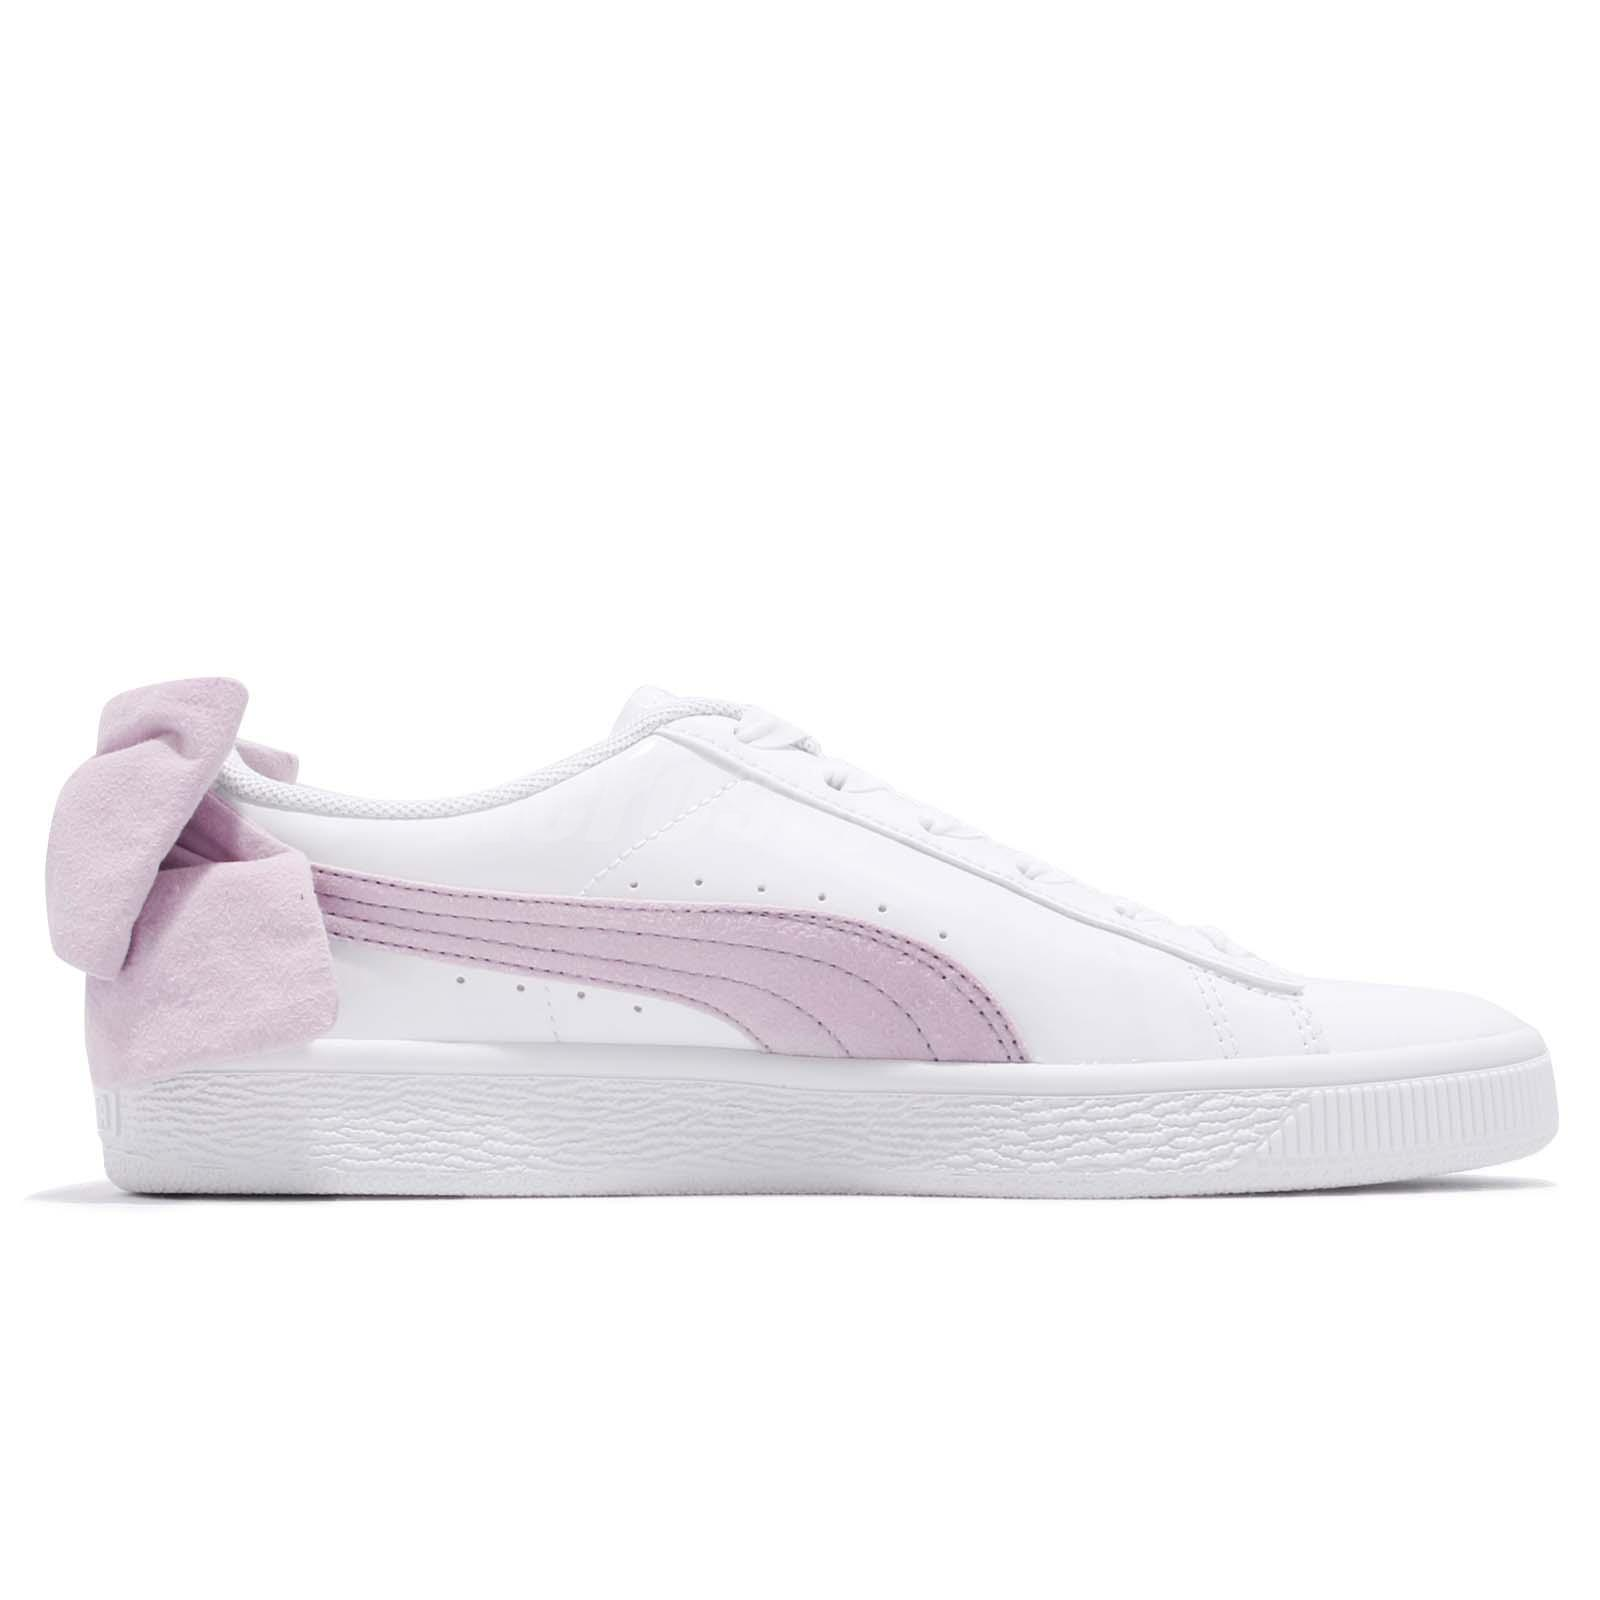 ... PUMA WHITE-WINSOME ORCHID. Made In  Indonesia. Condition  Brand New  With Box 6810b69e2